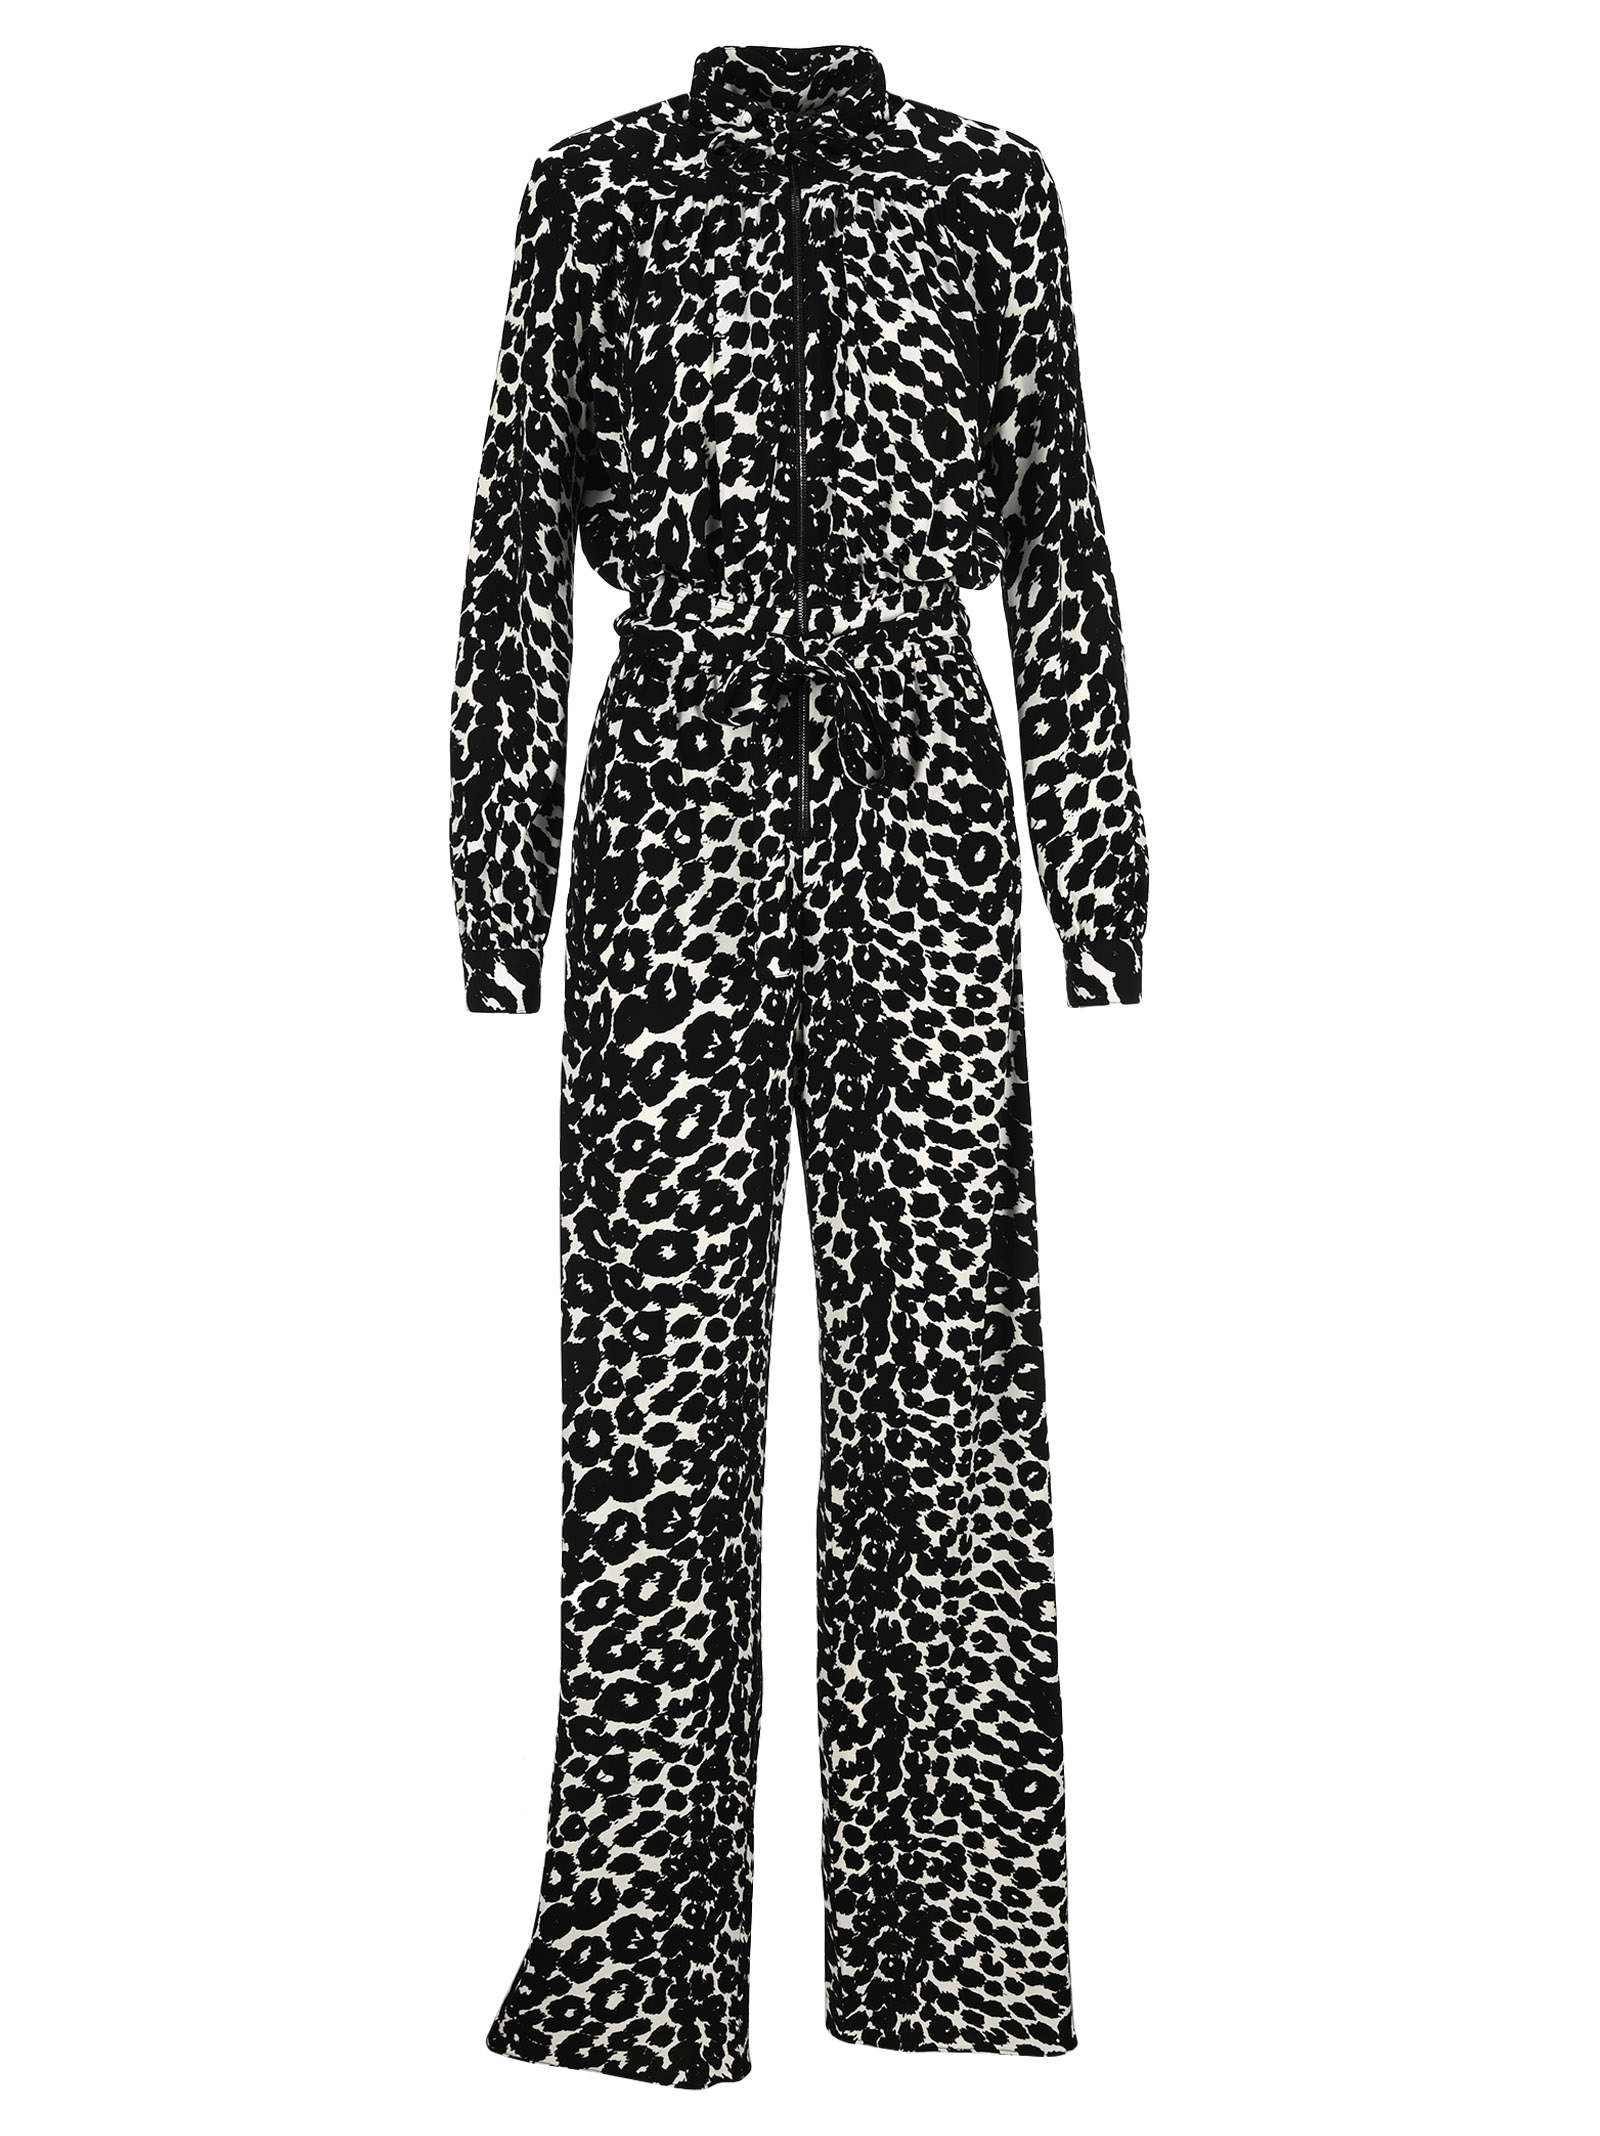 Tom Ford Ikat Leopard Print Crepe Jersey Zipped Jumpsuit In Black